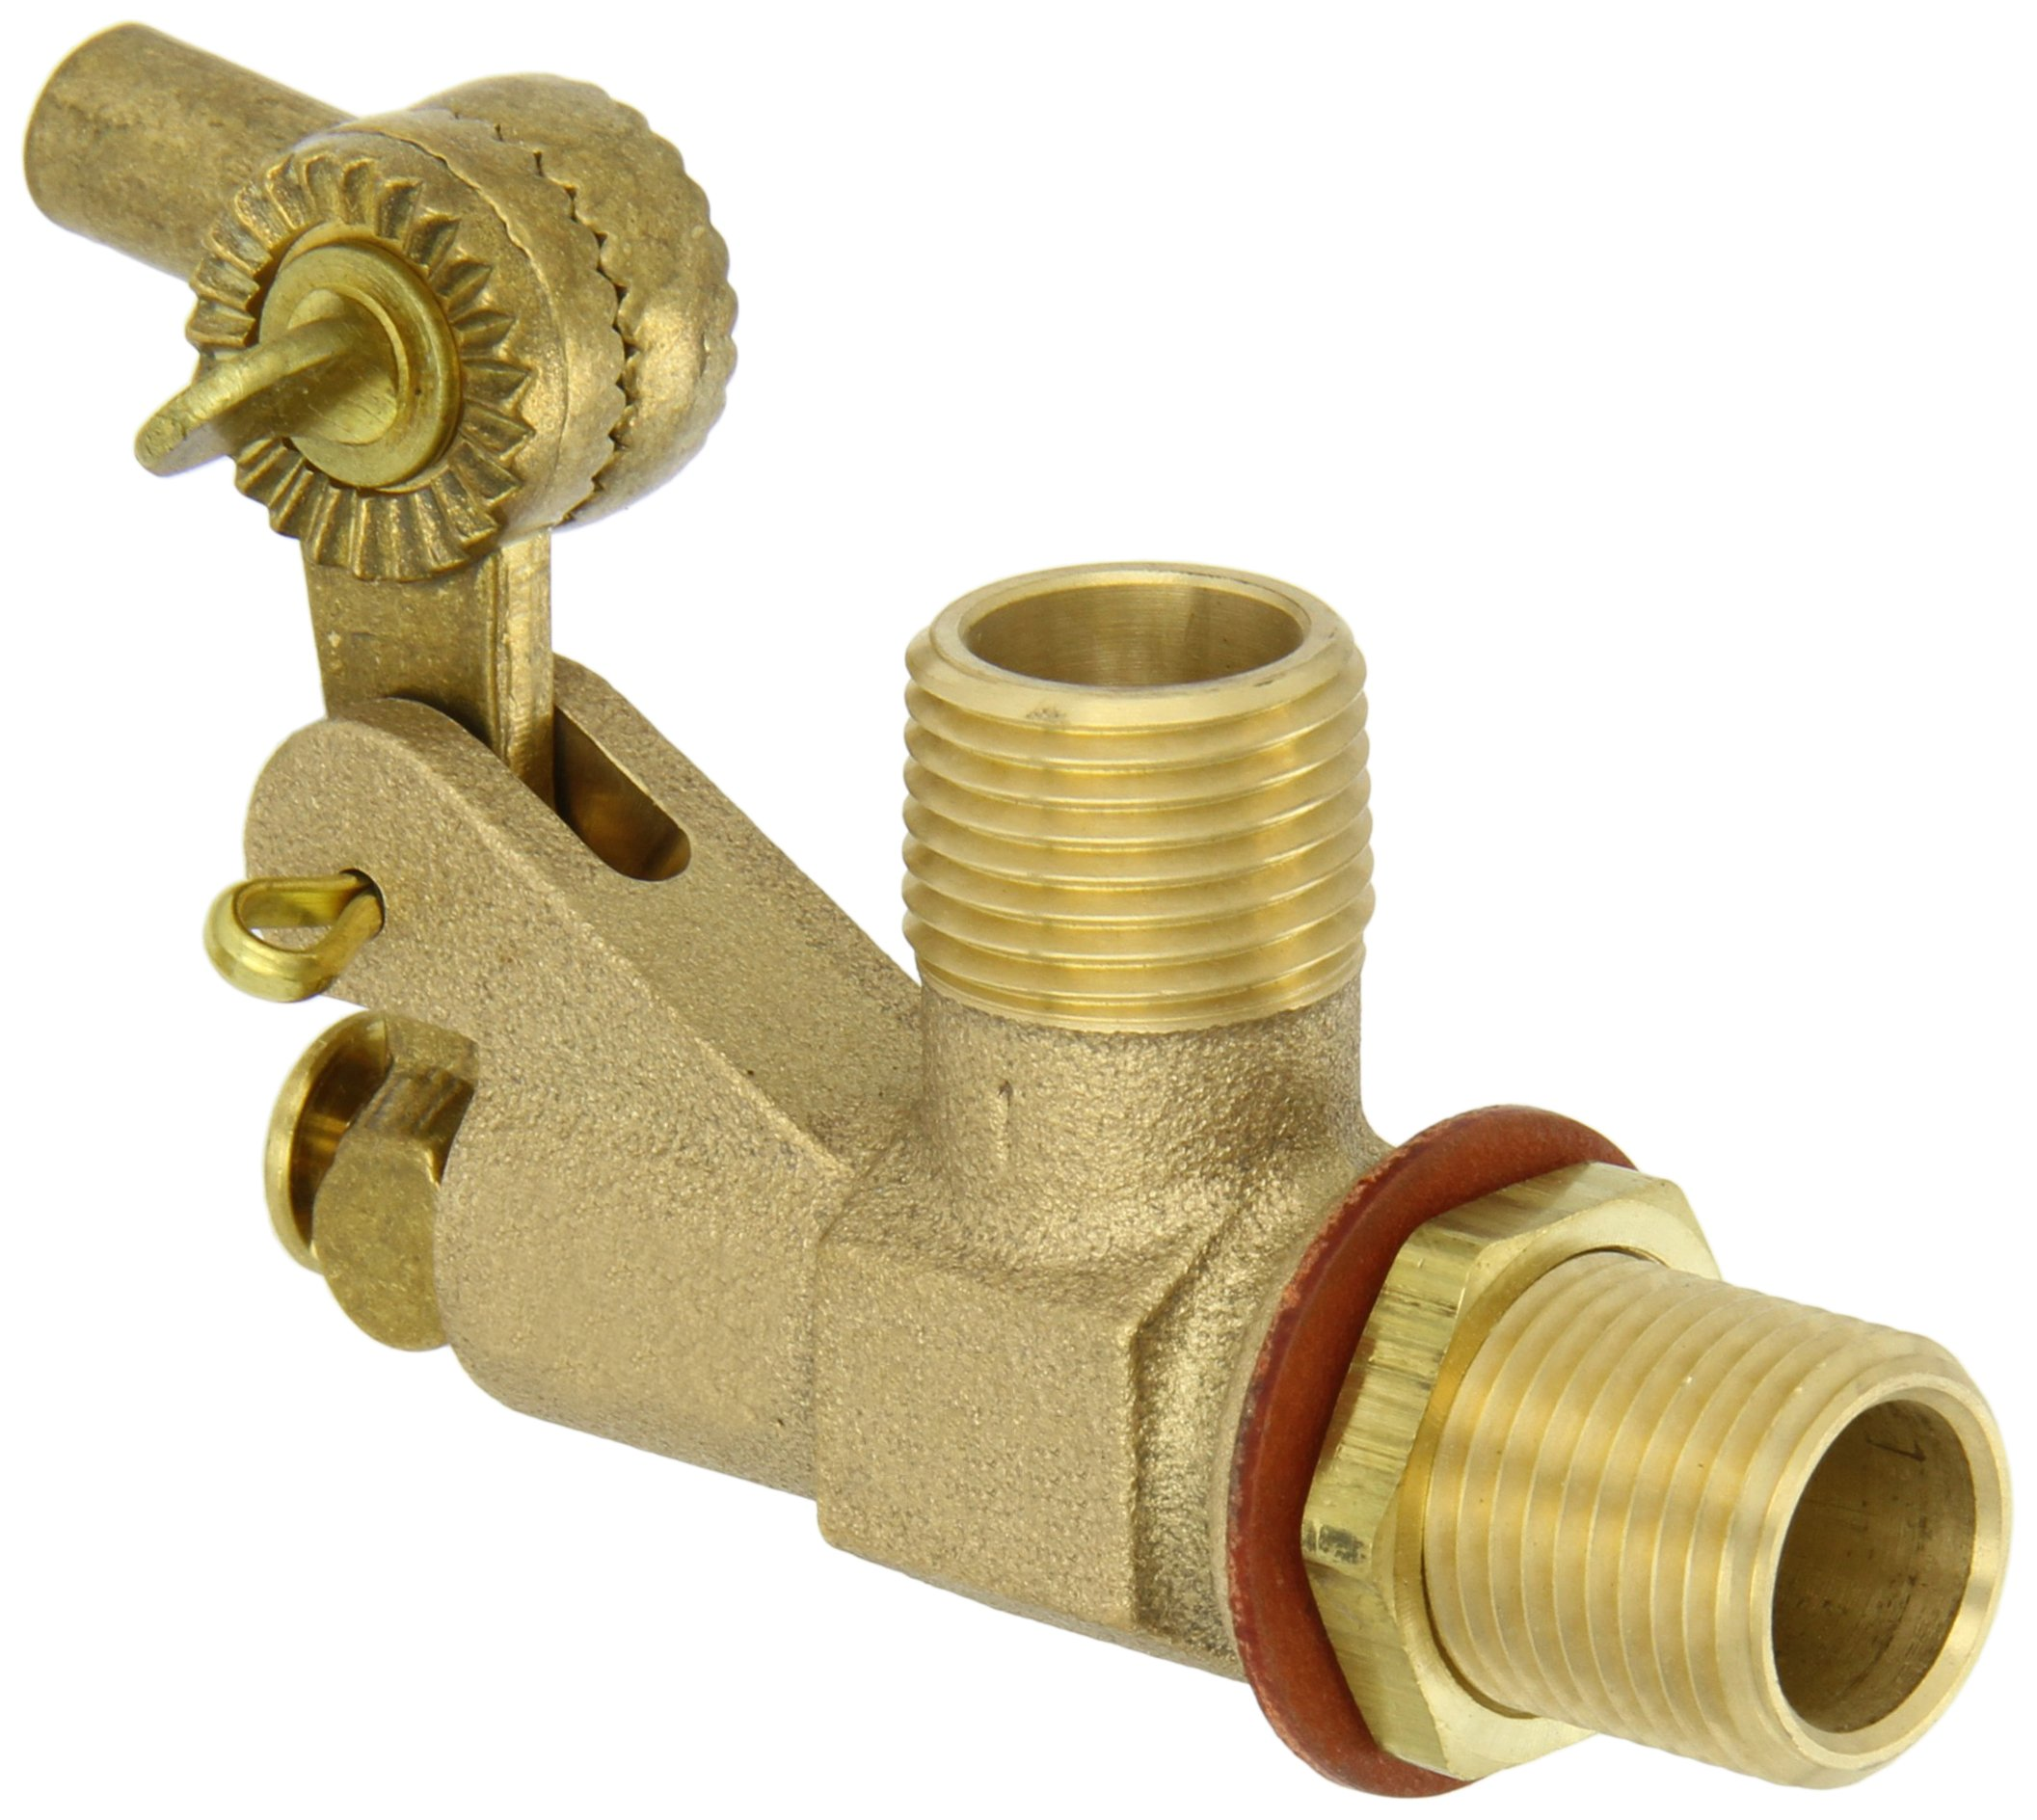 Robert Manufacturing R700L Series Bob Red Brass Tank Wall Mounted Bulkhead Float Valve with Locknut and Gasket, 1/2'' NPT Male Straight Inlet x 1/2'' NPT Male Outlet, 22 gpm at 85 psi Pressure